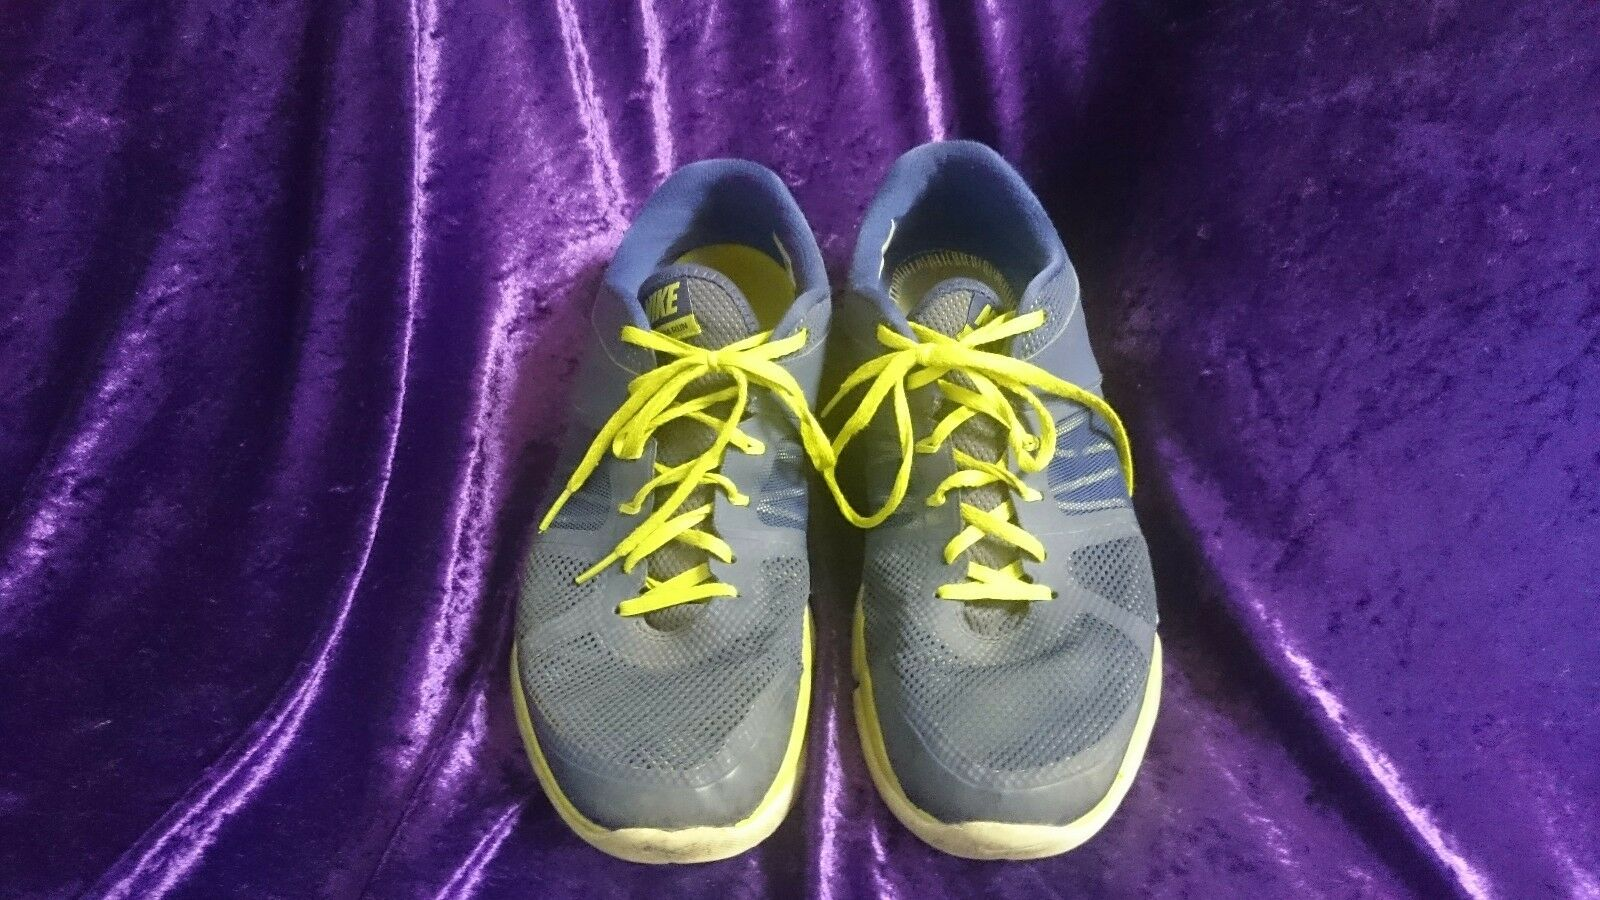 chaussures de sport nike baskets taille nous 13 hommes hommes hommes hommes  flex 2014 courir bleu et jaune | Emballage Solide  a396b7